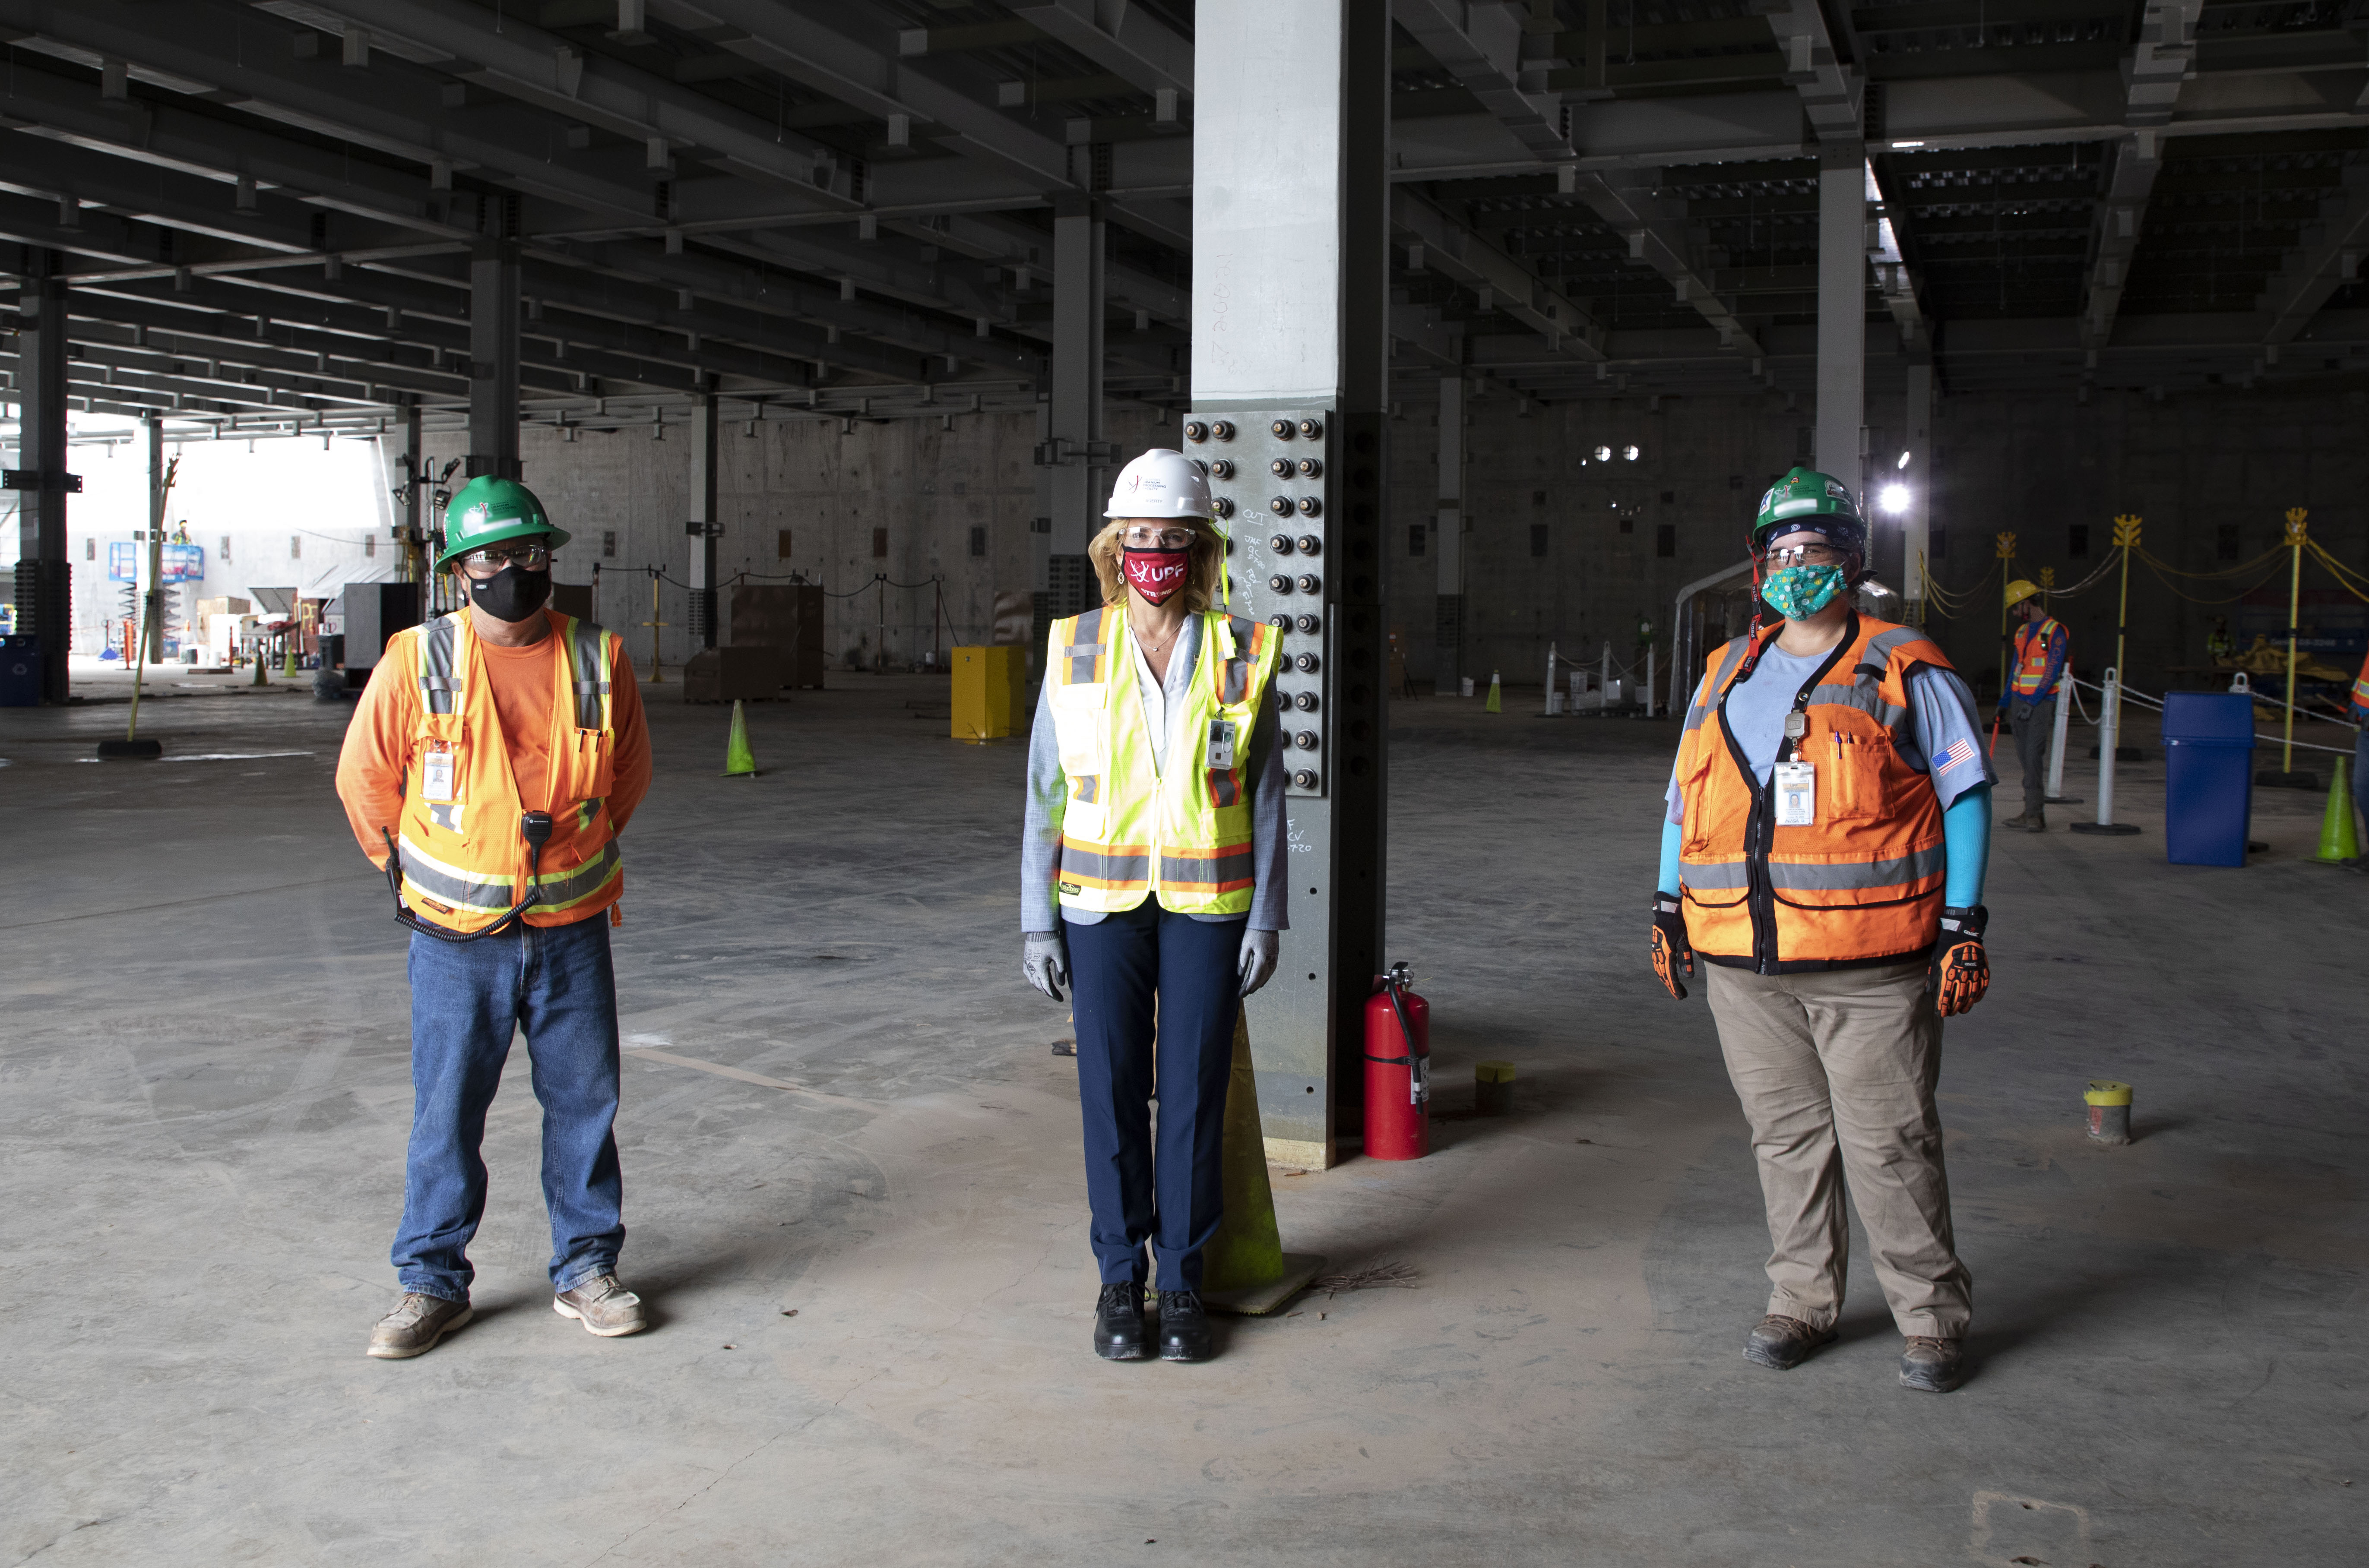 NNSA Administrator Lisa E. Gordon-Hagerty (center) with UPF Iron Workers in the Main Process Building